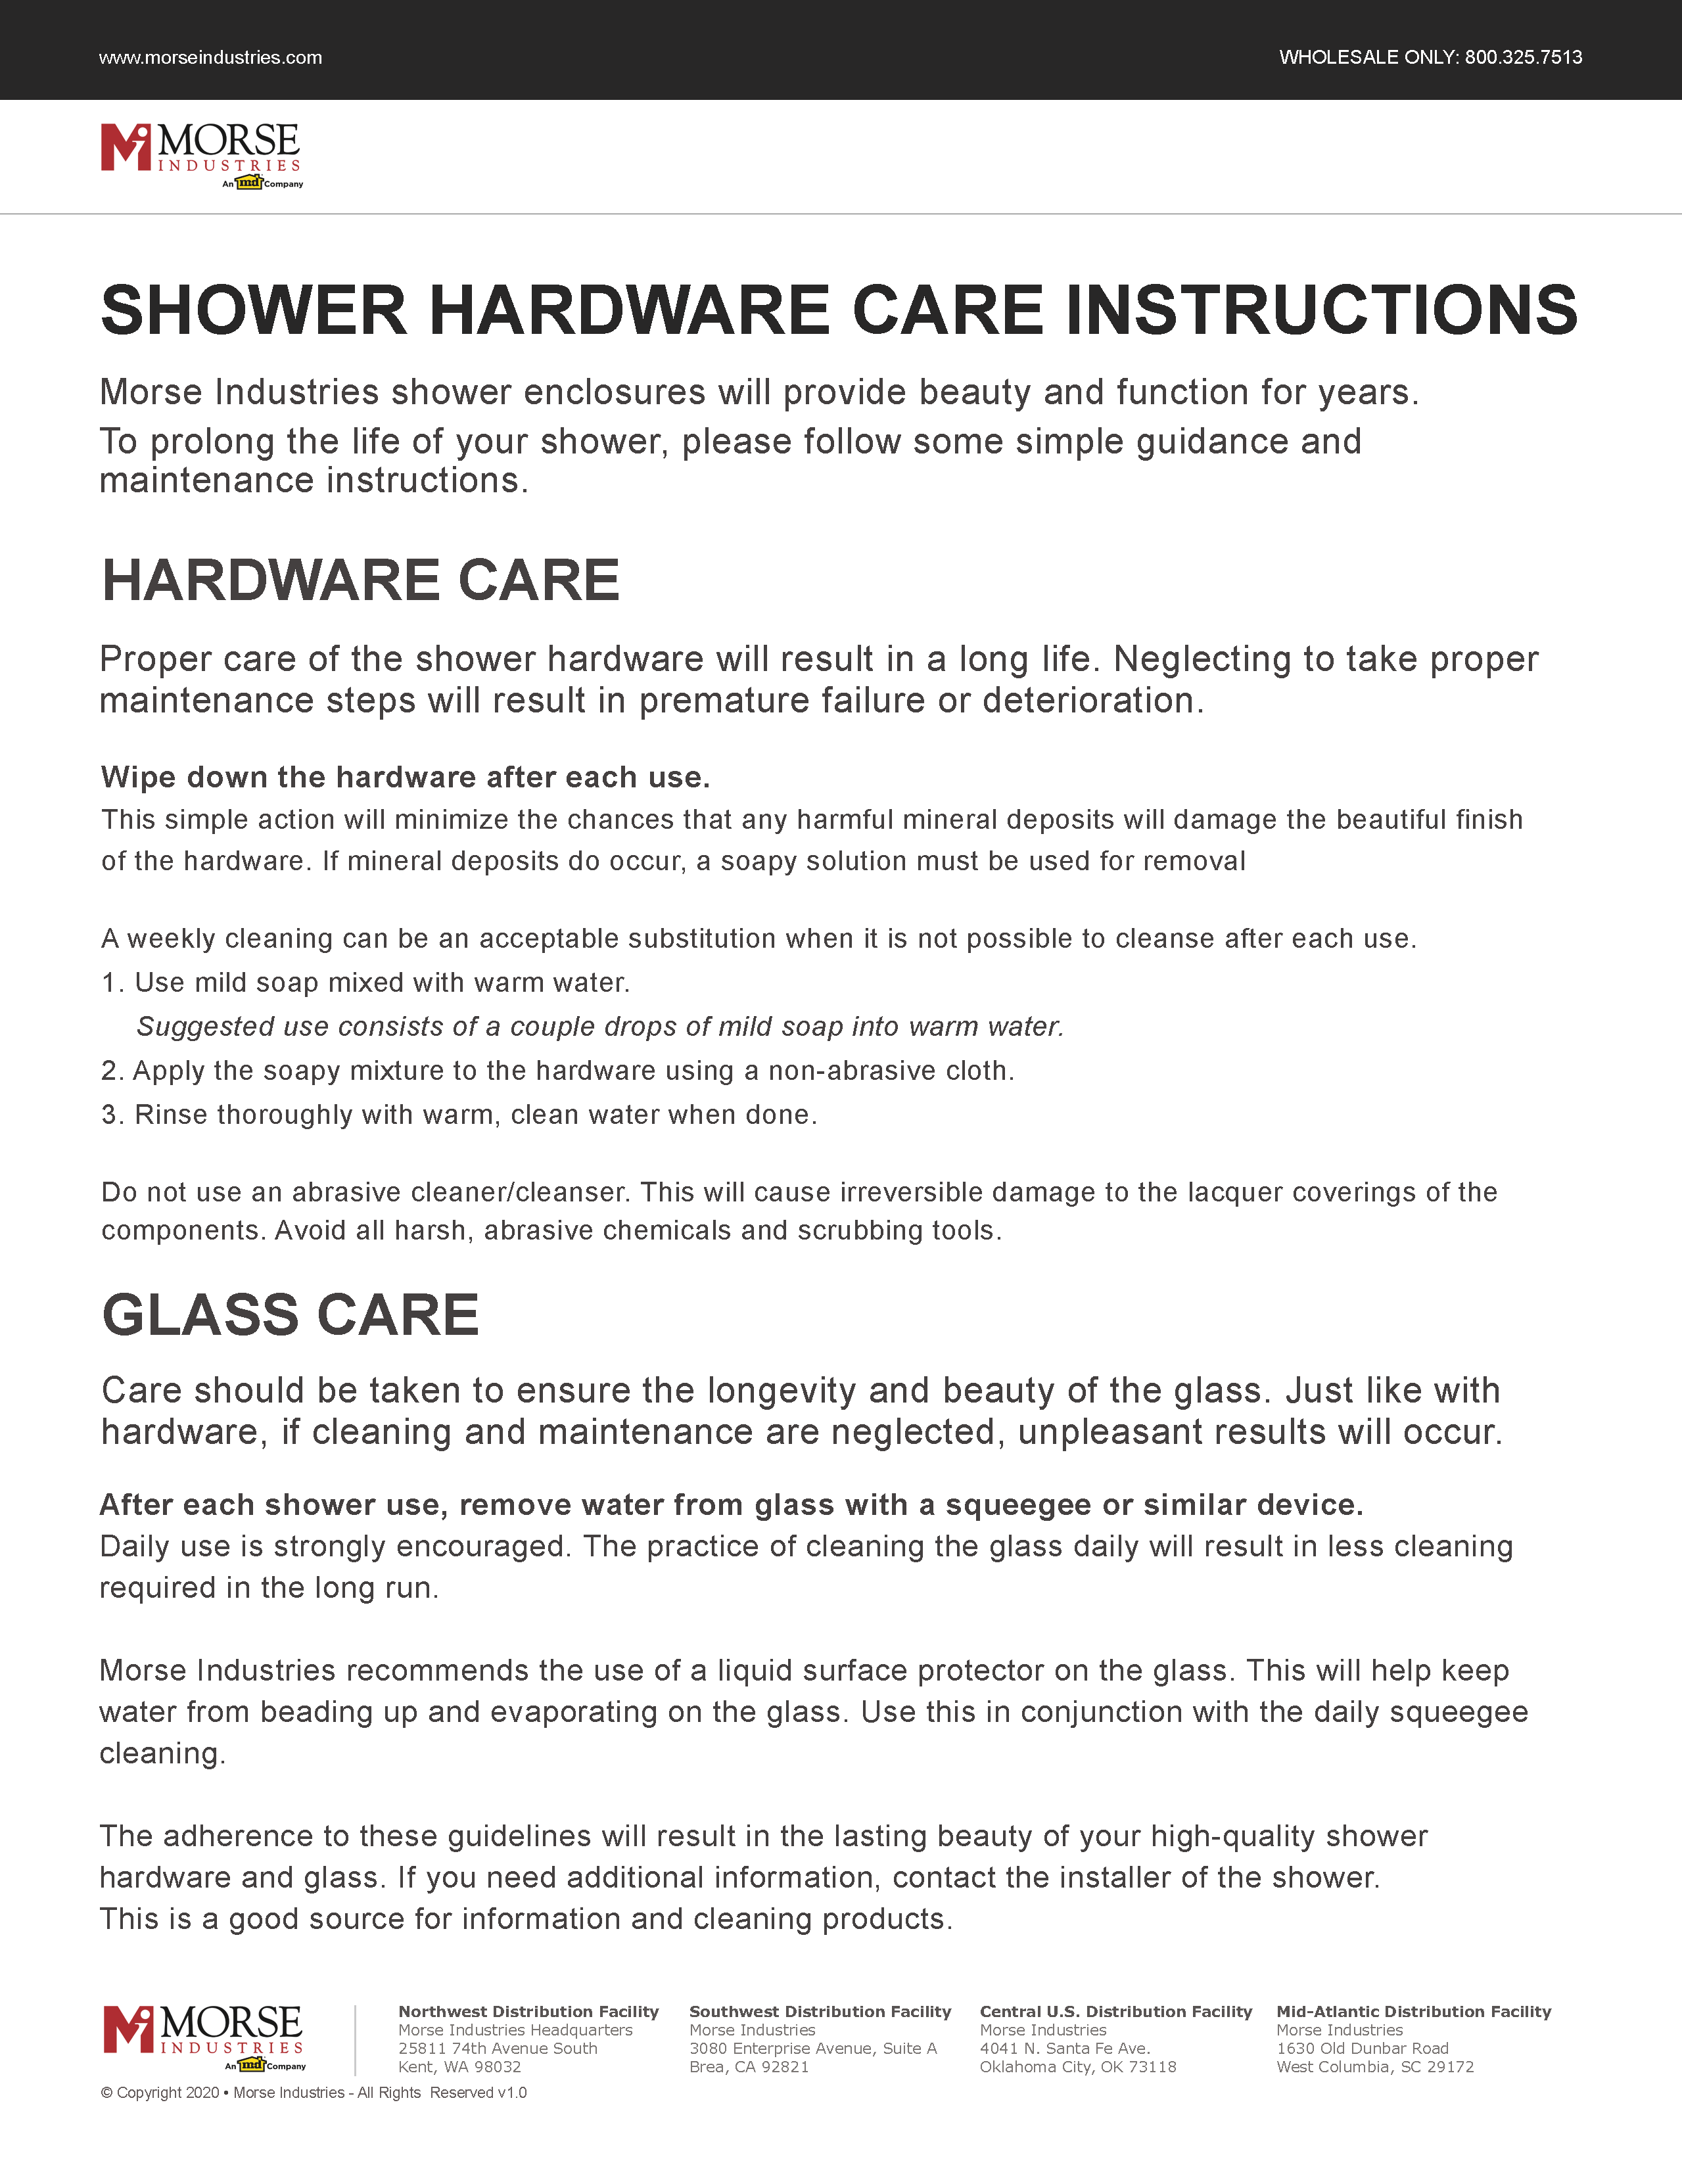 Shower Care Instructions